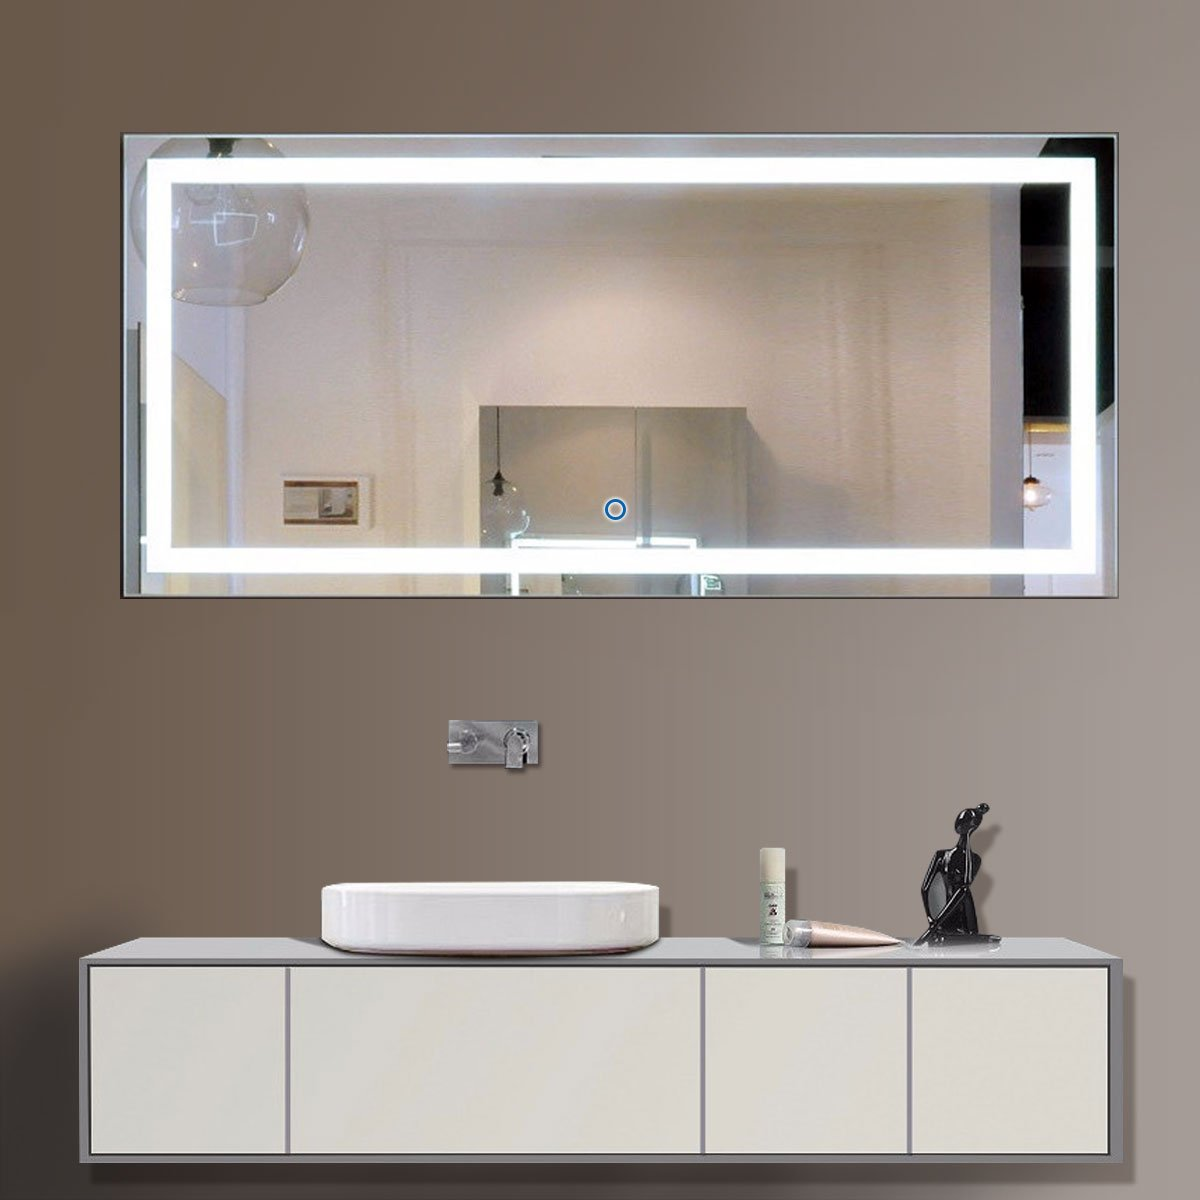 60 x 28 In Horizontal LED Bathroom Silvered Mirror with Touch Button (CK010-C)